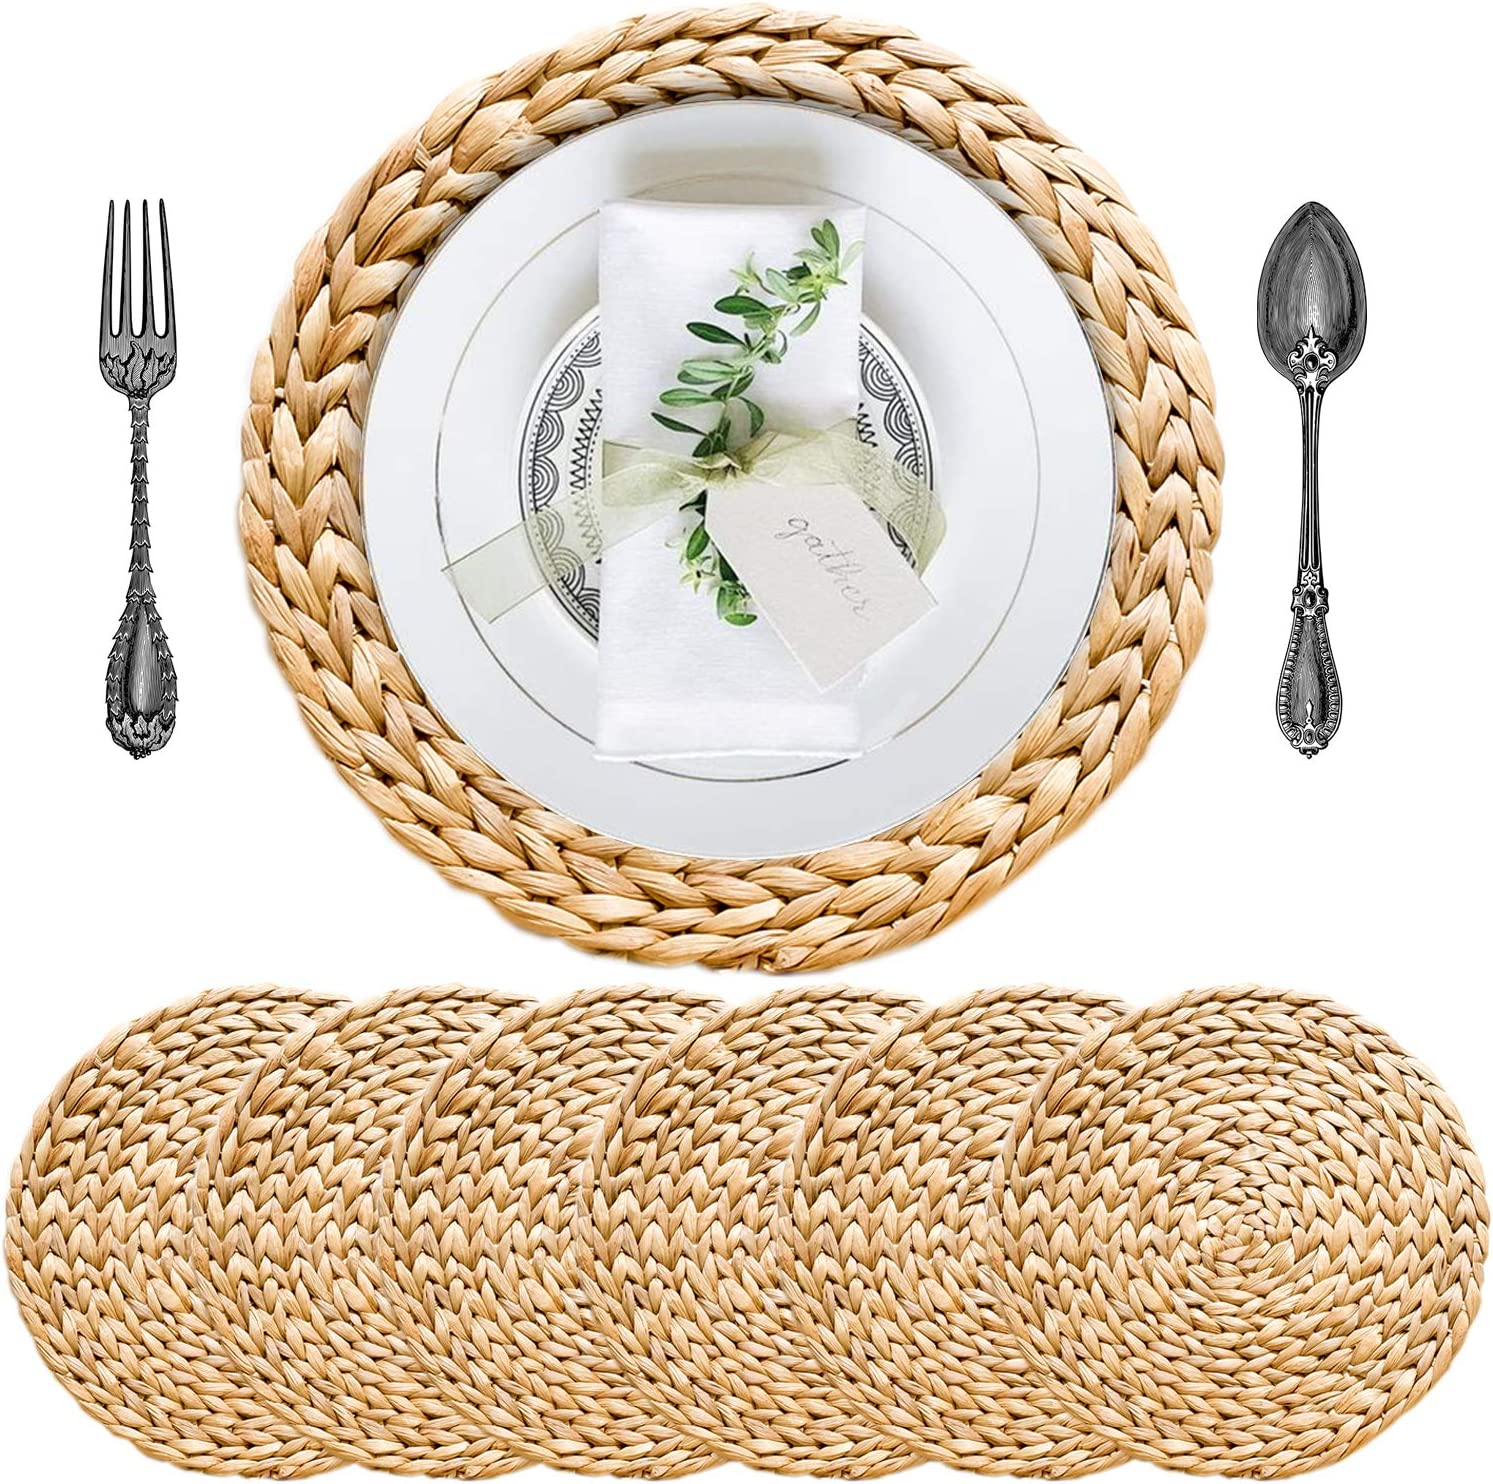 SOKFARM Round Placemats for Dining Table, Water Hyacinth Wicker Placemats, Placemats for Round Table, Woven Placemats, Seagrass Placemats, Table Mats, Diameter 11.8 Inches, Round Placemats Set of 6